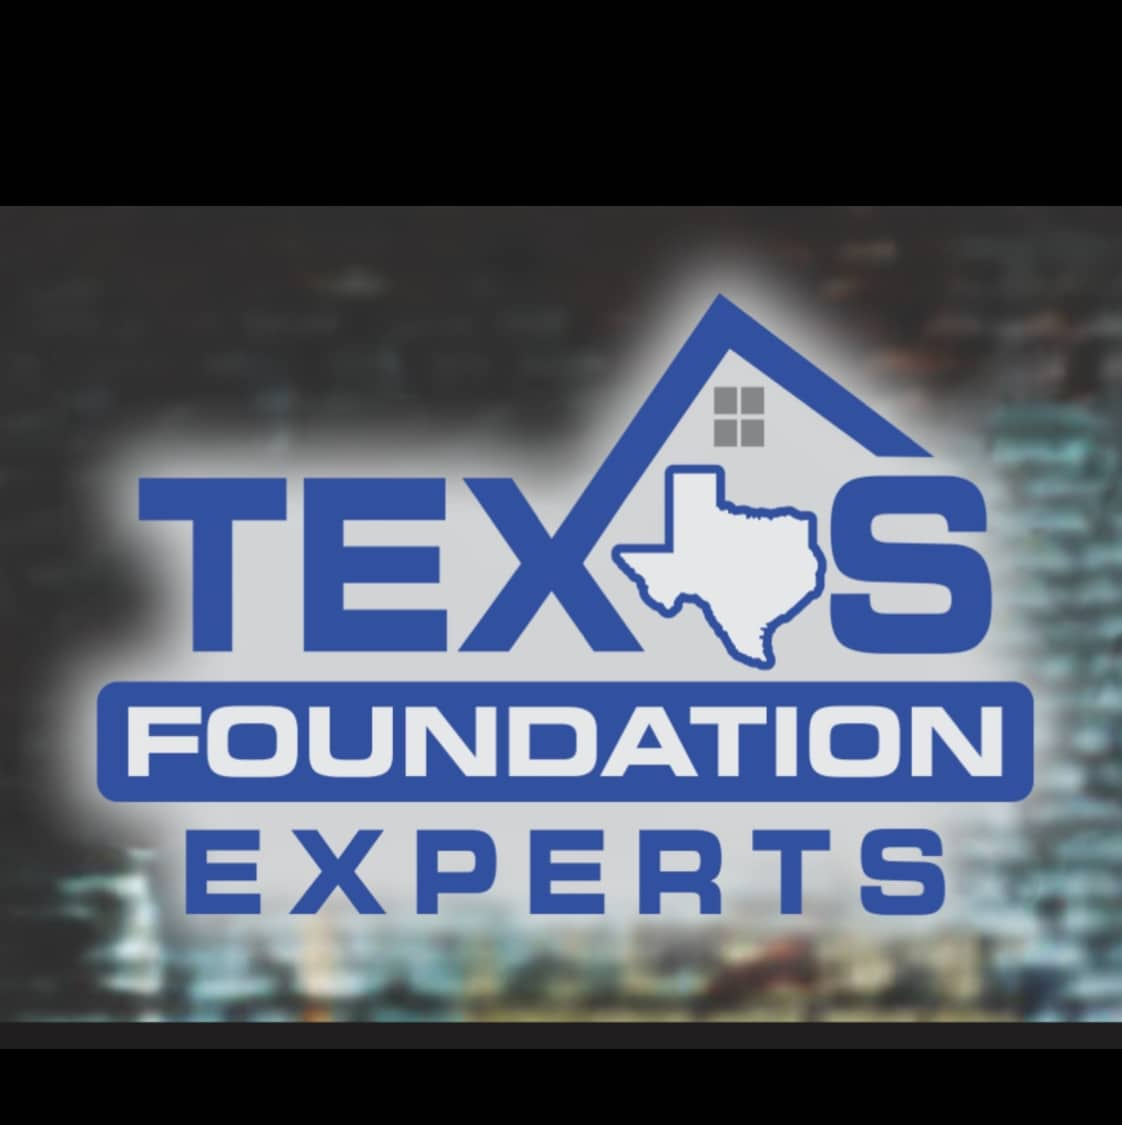 Texas Foundation Experts